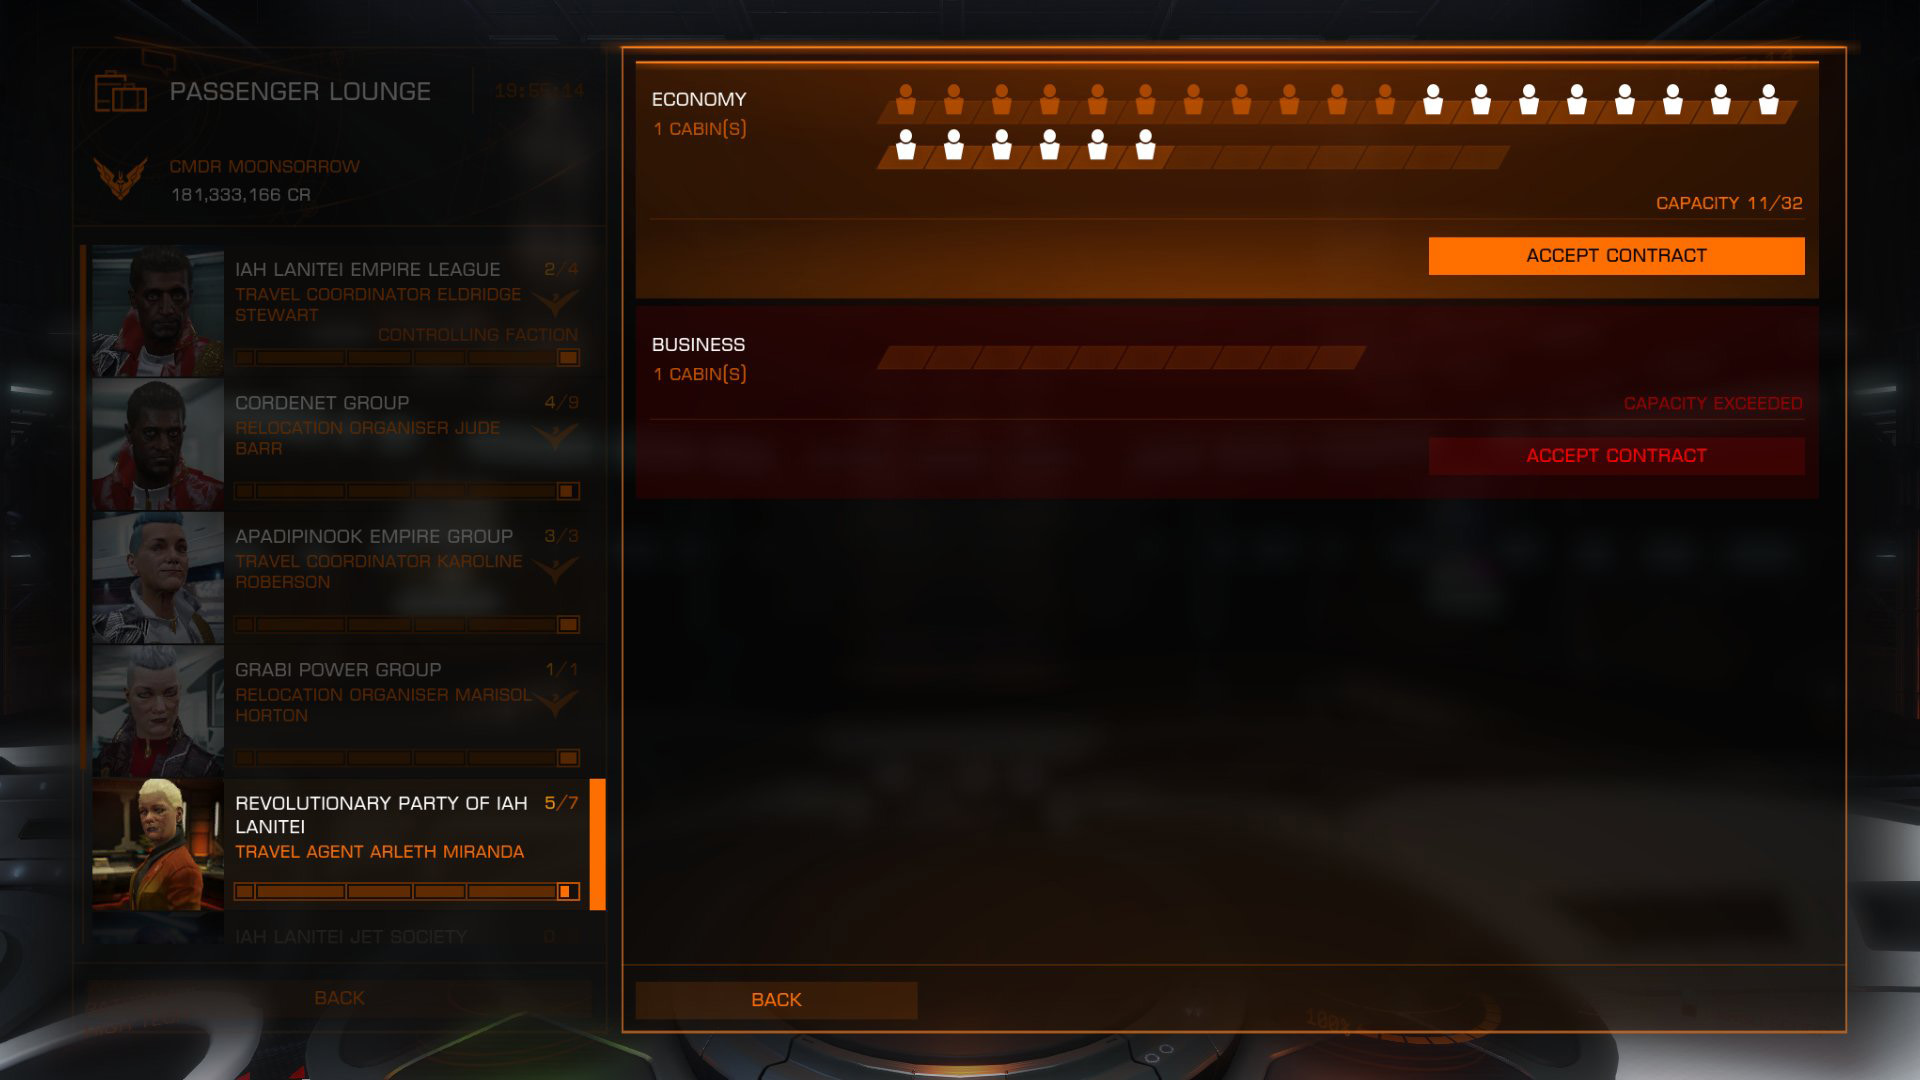 Elite: Dangerous beginner's guide: a screenshot showing how passenger cabins are shared.